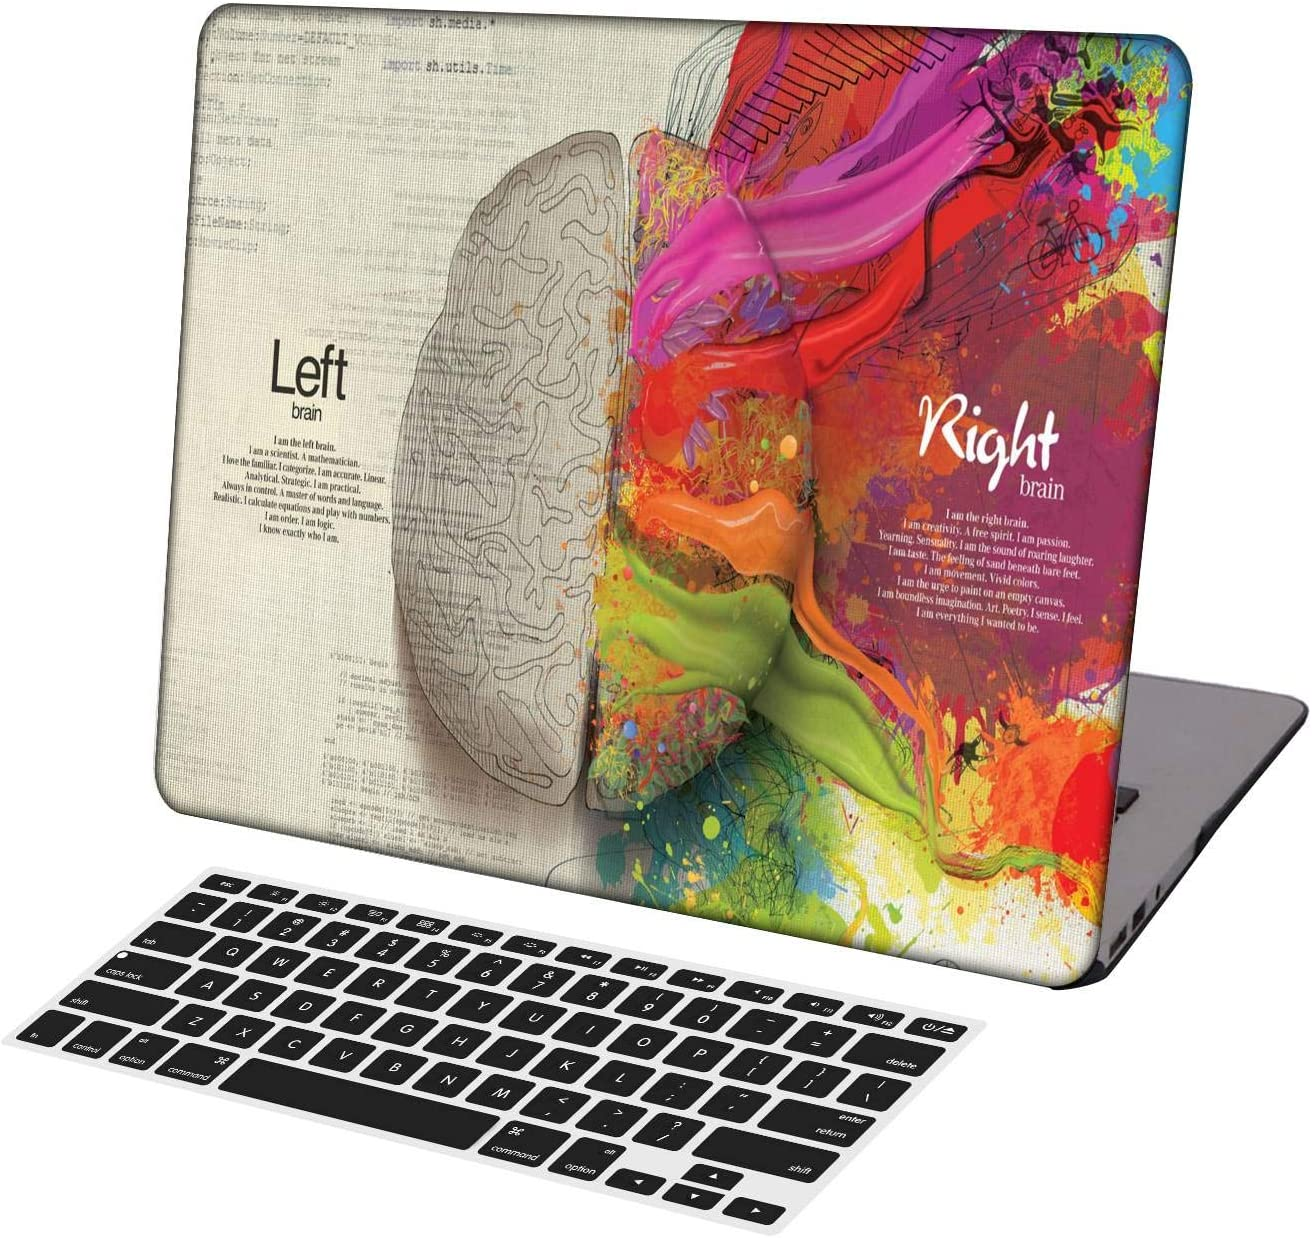 KSK KAISHEK Laptop Case for MacBook Air 13 inch Model A1369/A466,Plastic Ultra Slim Light Hard Shell Case Cover Keyboard Cover Compatible MacBook Air 13 Inch No Touch ID,Left and Right Brain